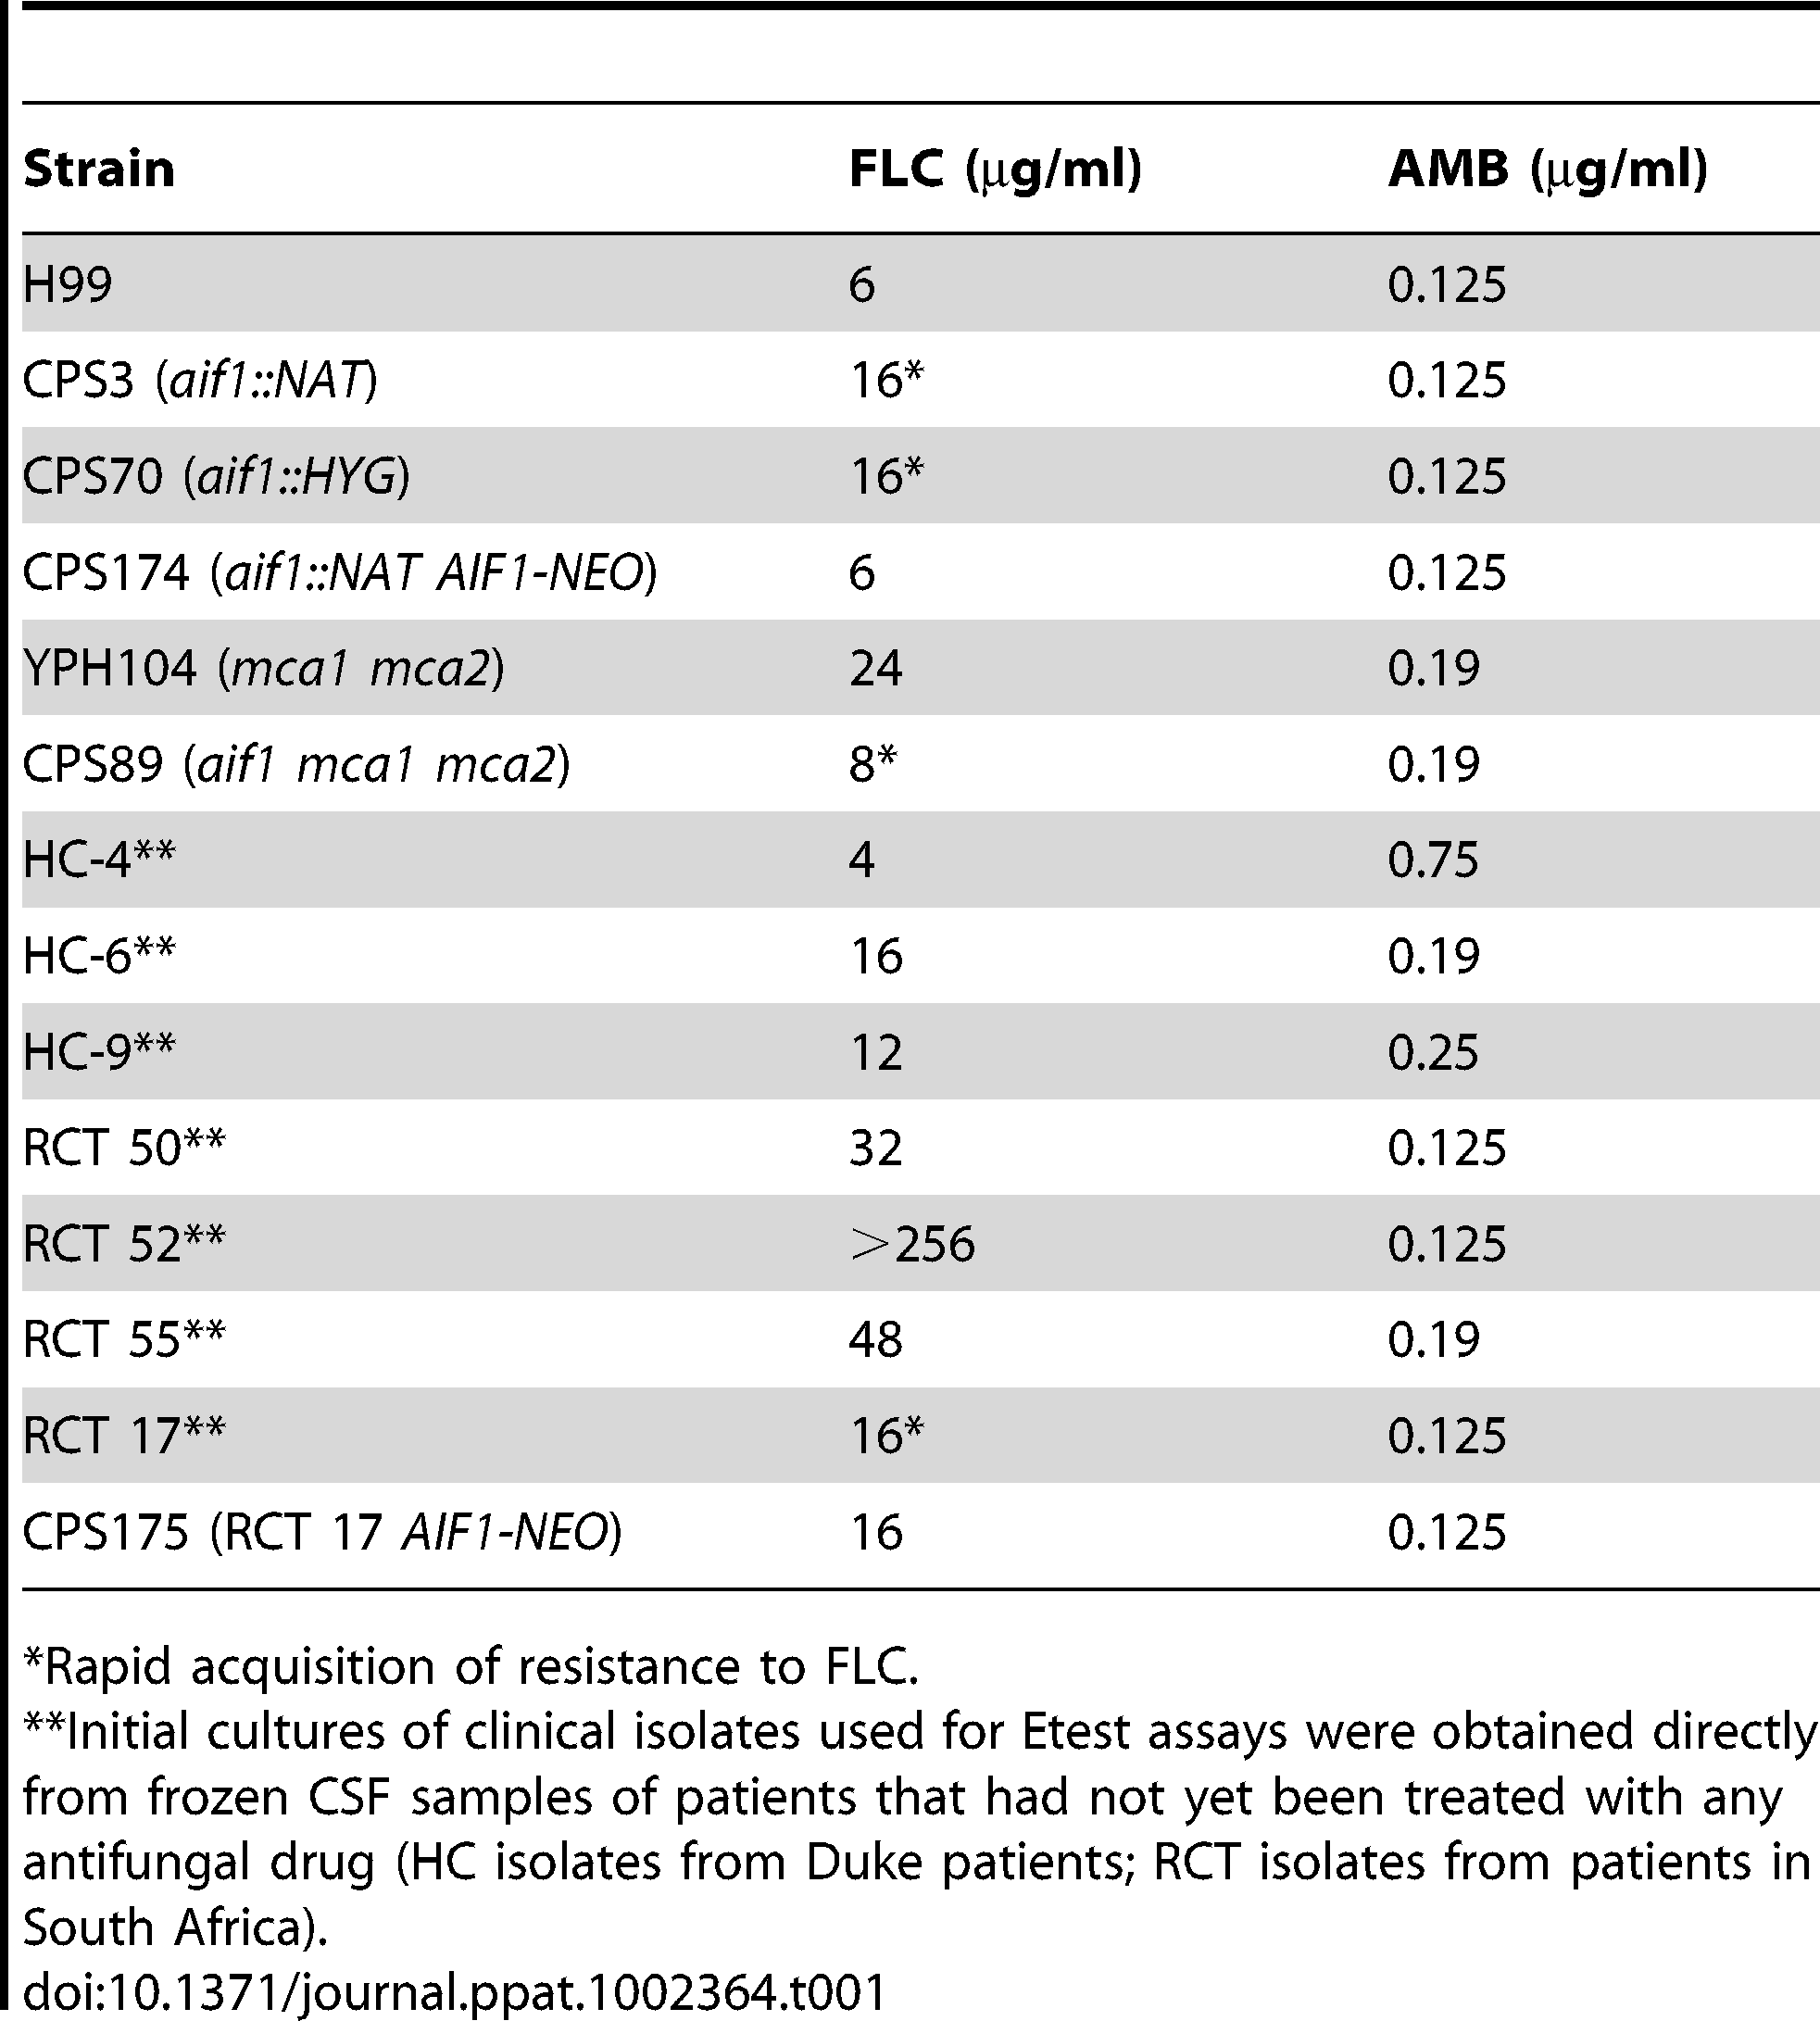 Minimal inhibitory concentration (MIC, µg/ml) found in Etest assays.